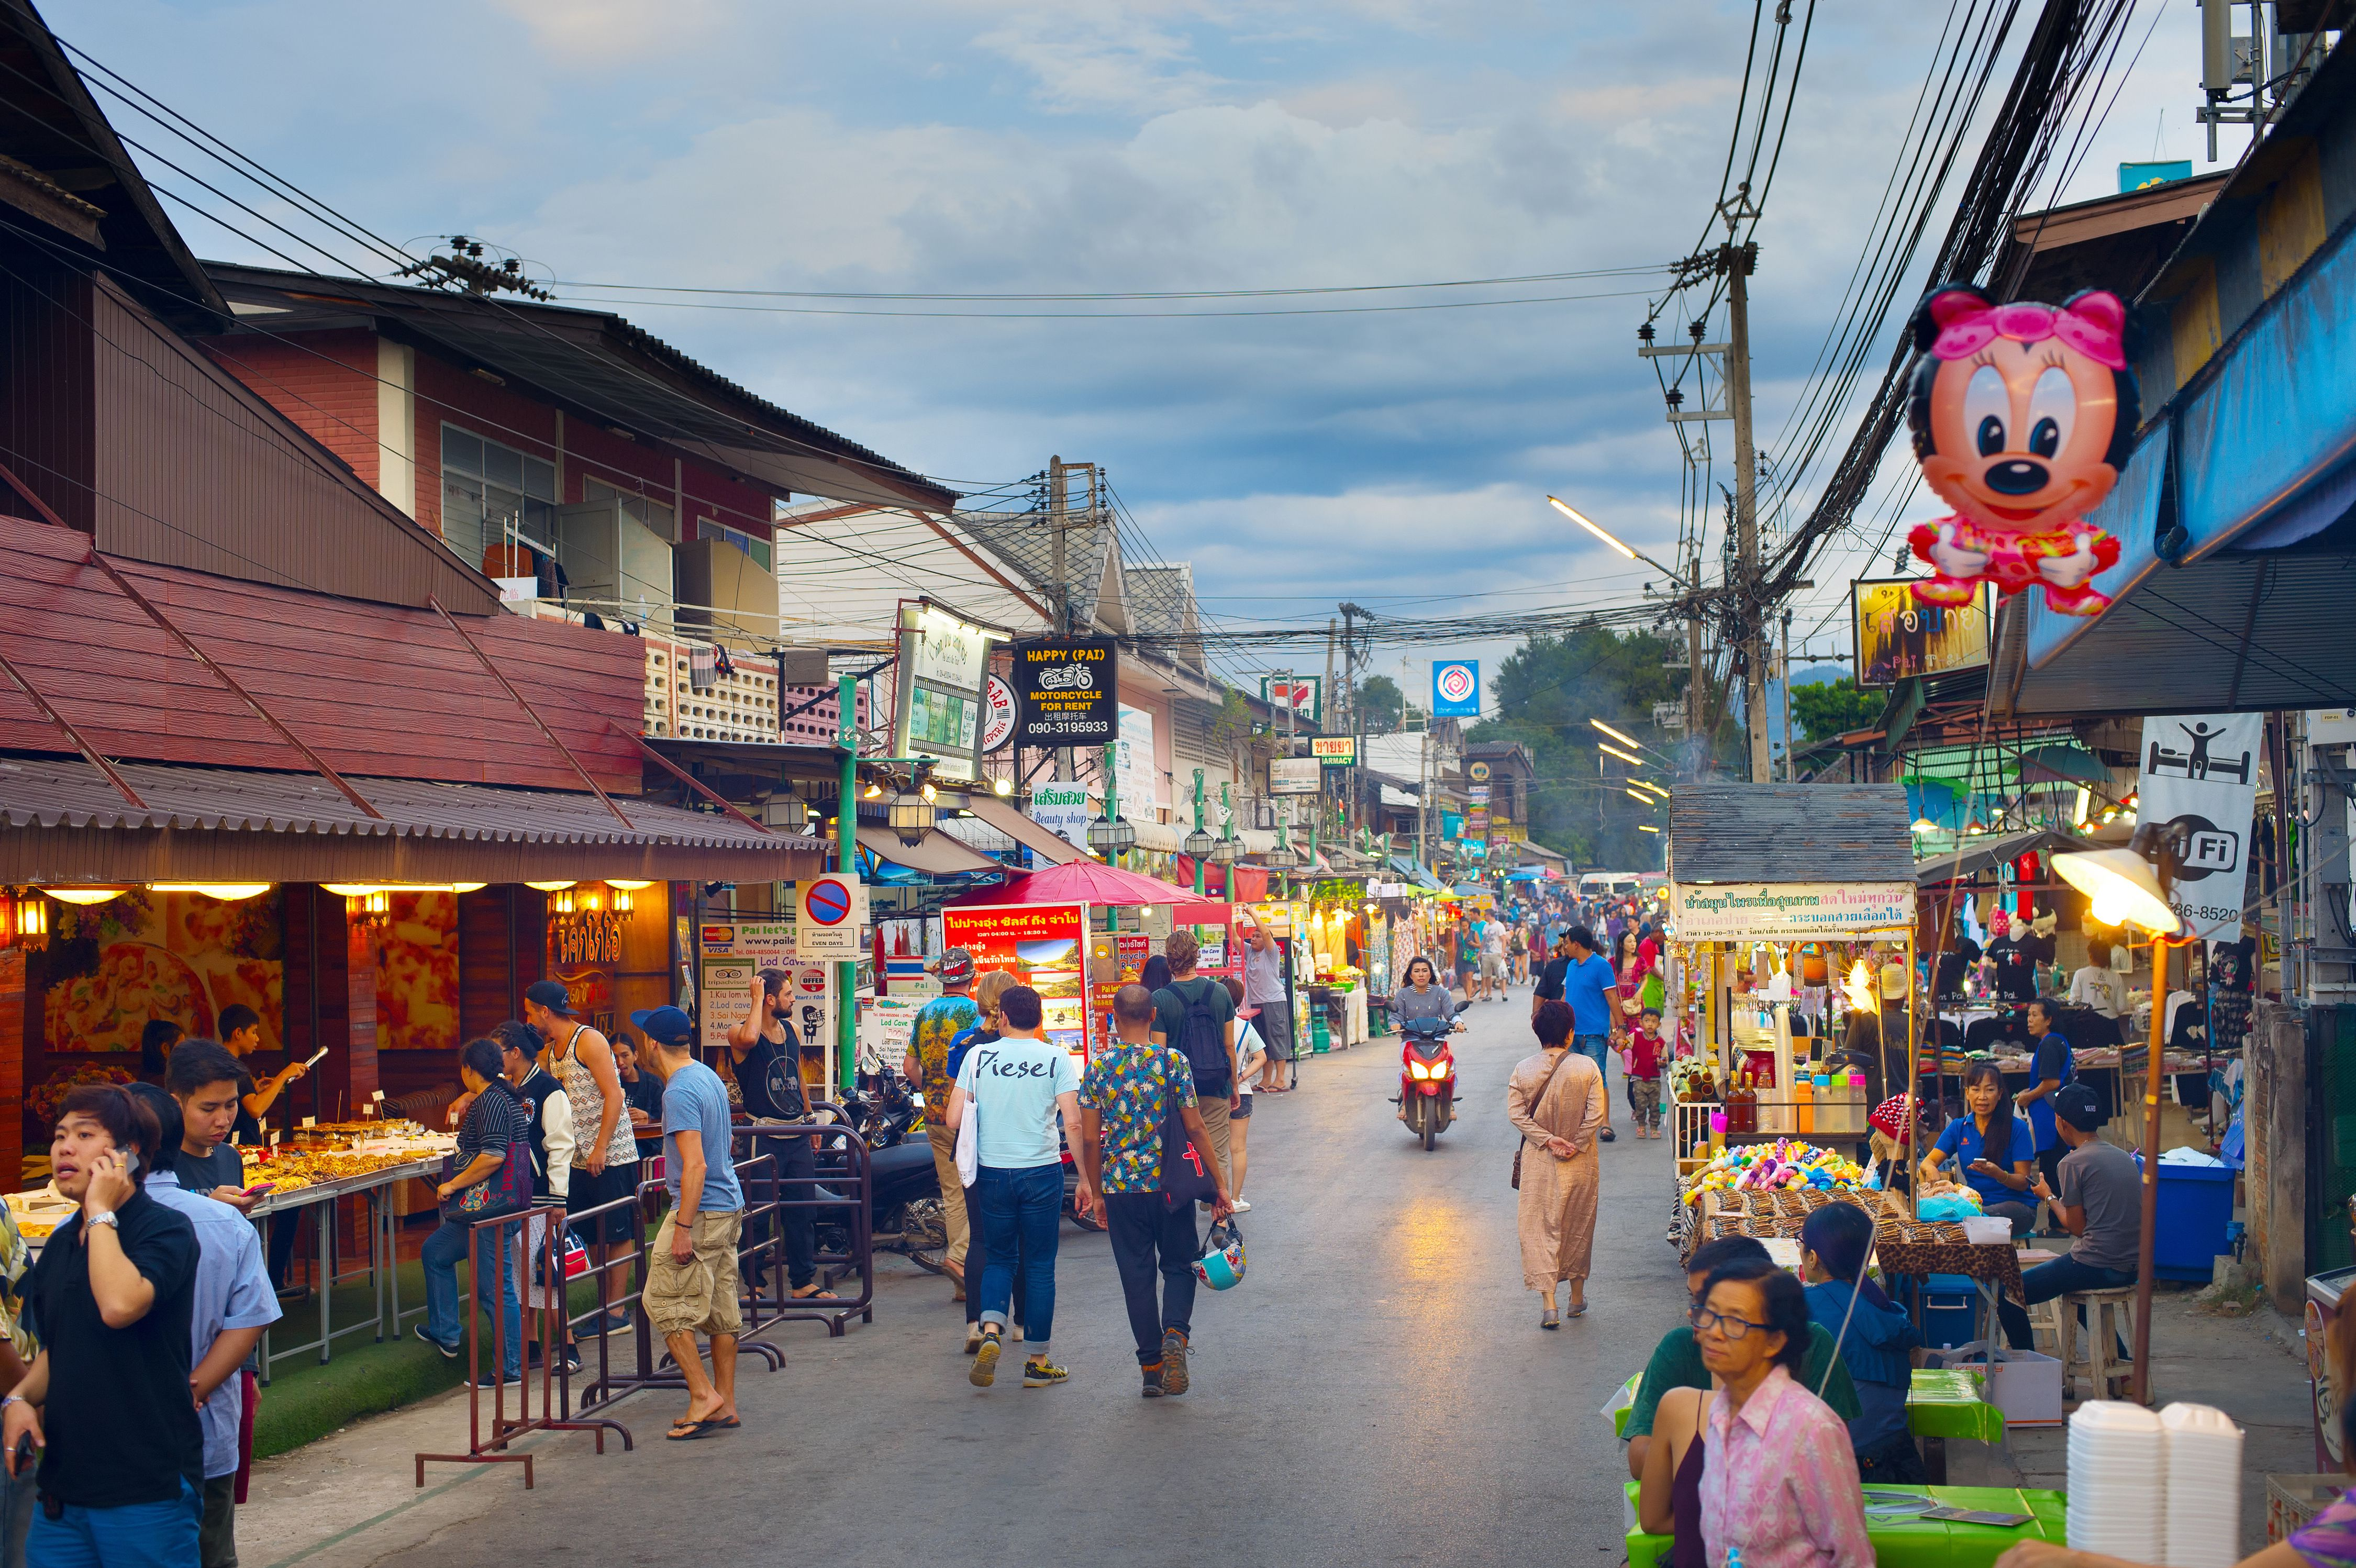 Nightlife in Pai, Thailand: Where to Go